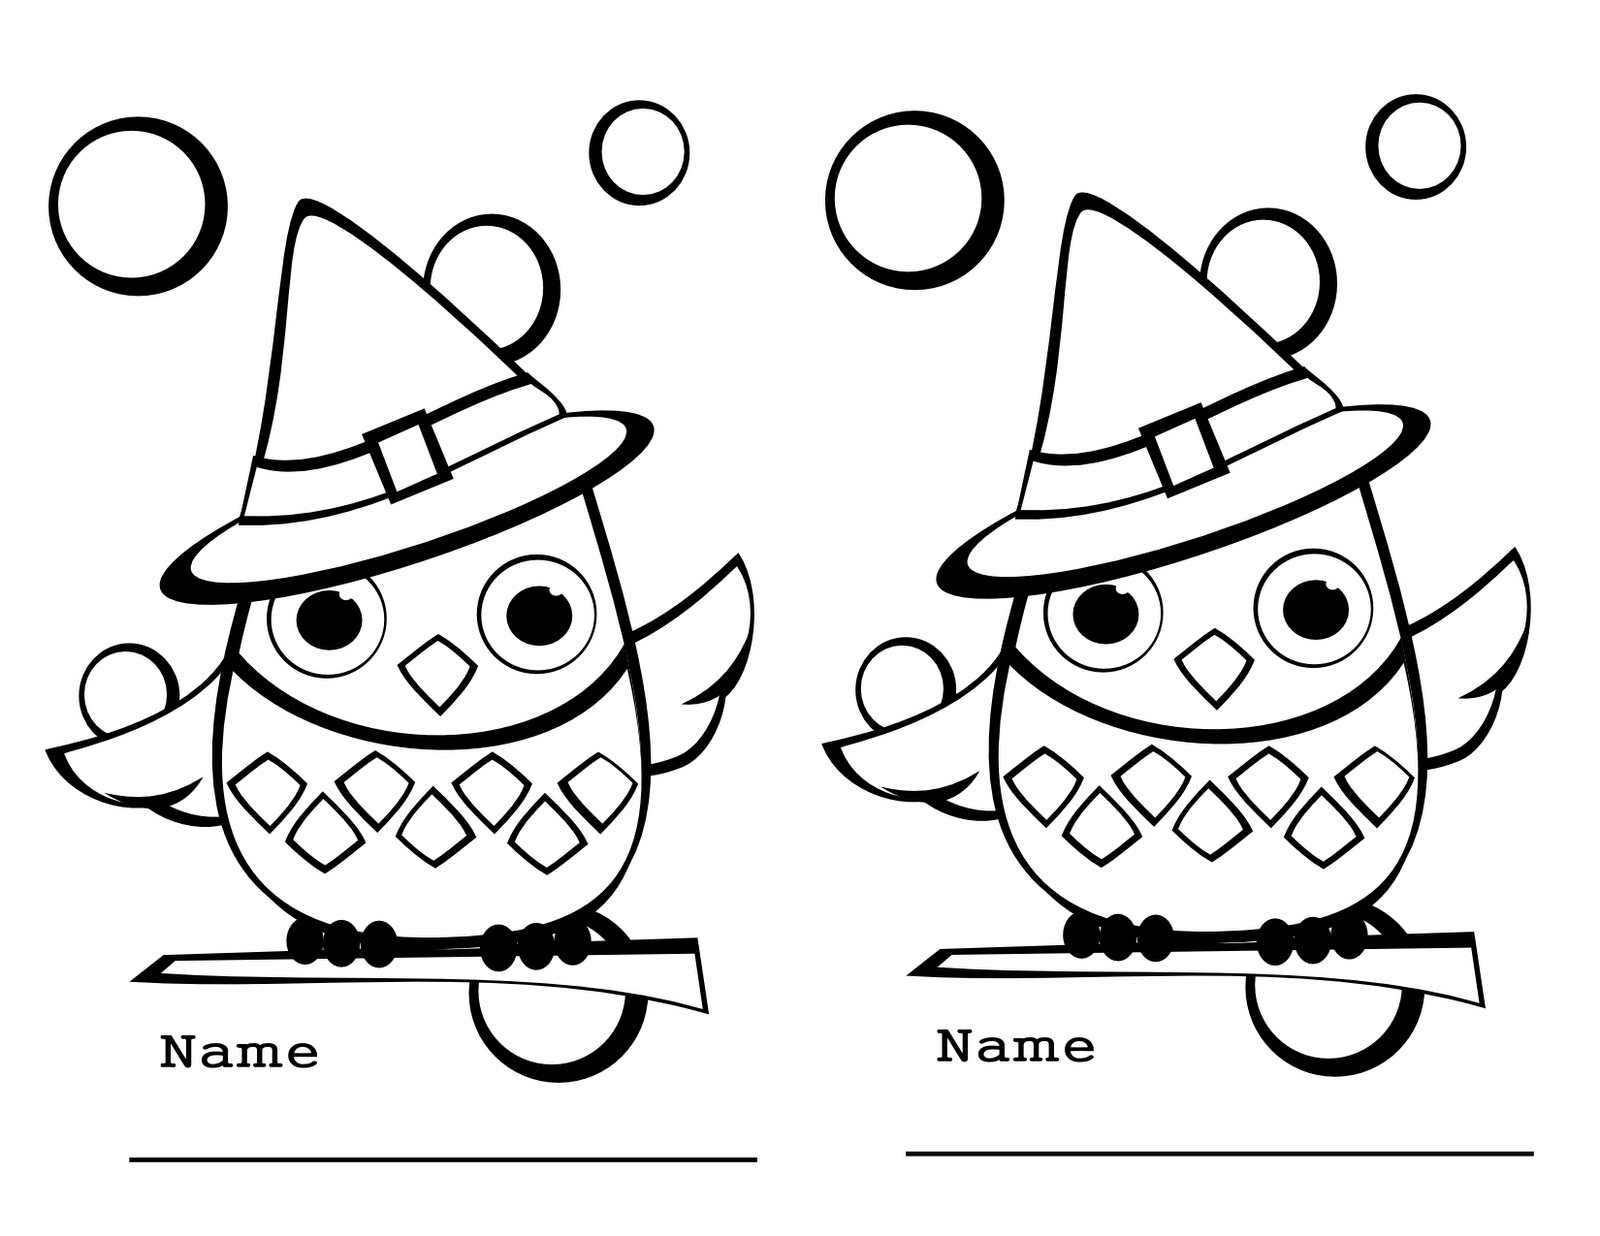 Free printable kindergarten coloring pages for kids for Printable owl coloring pages